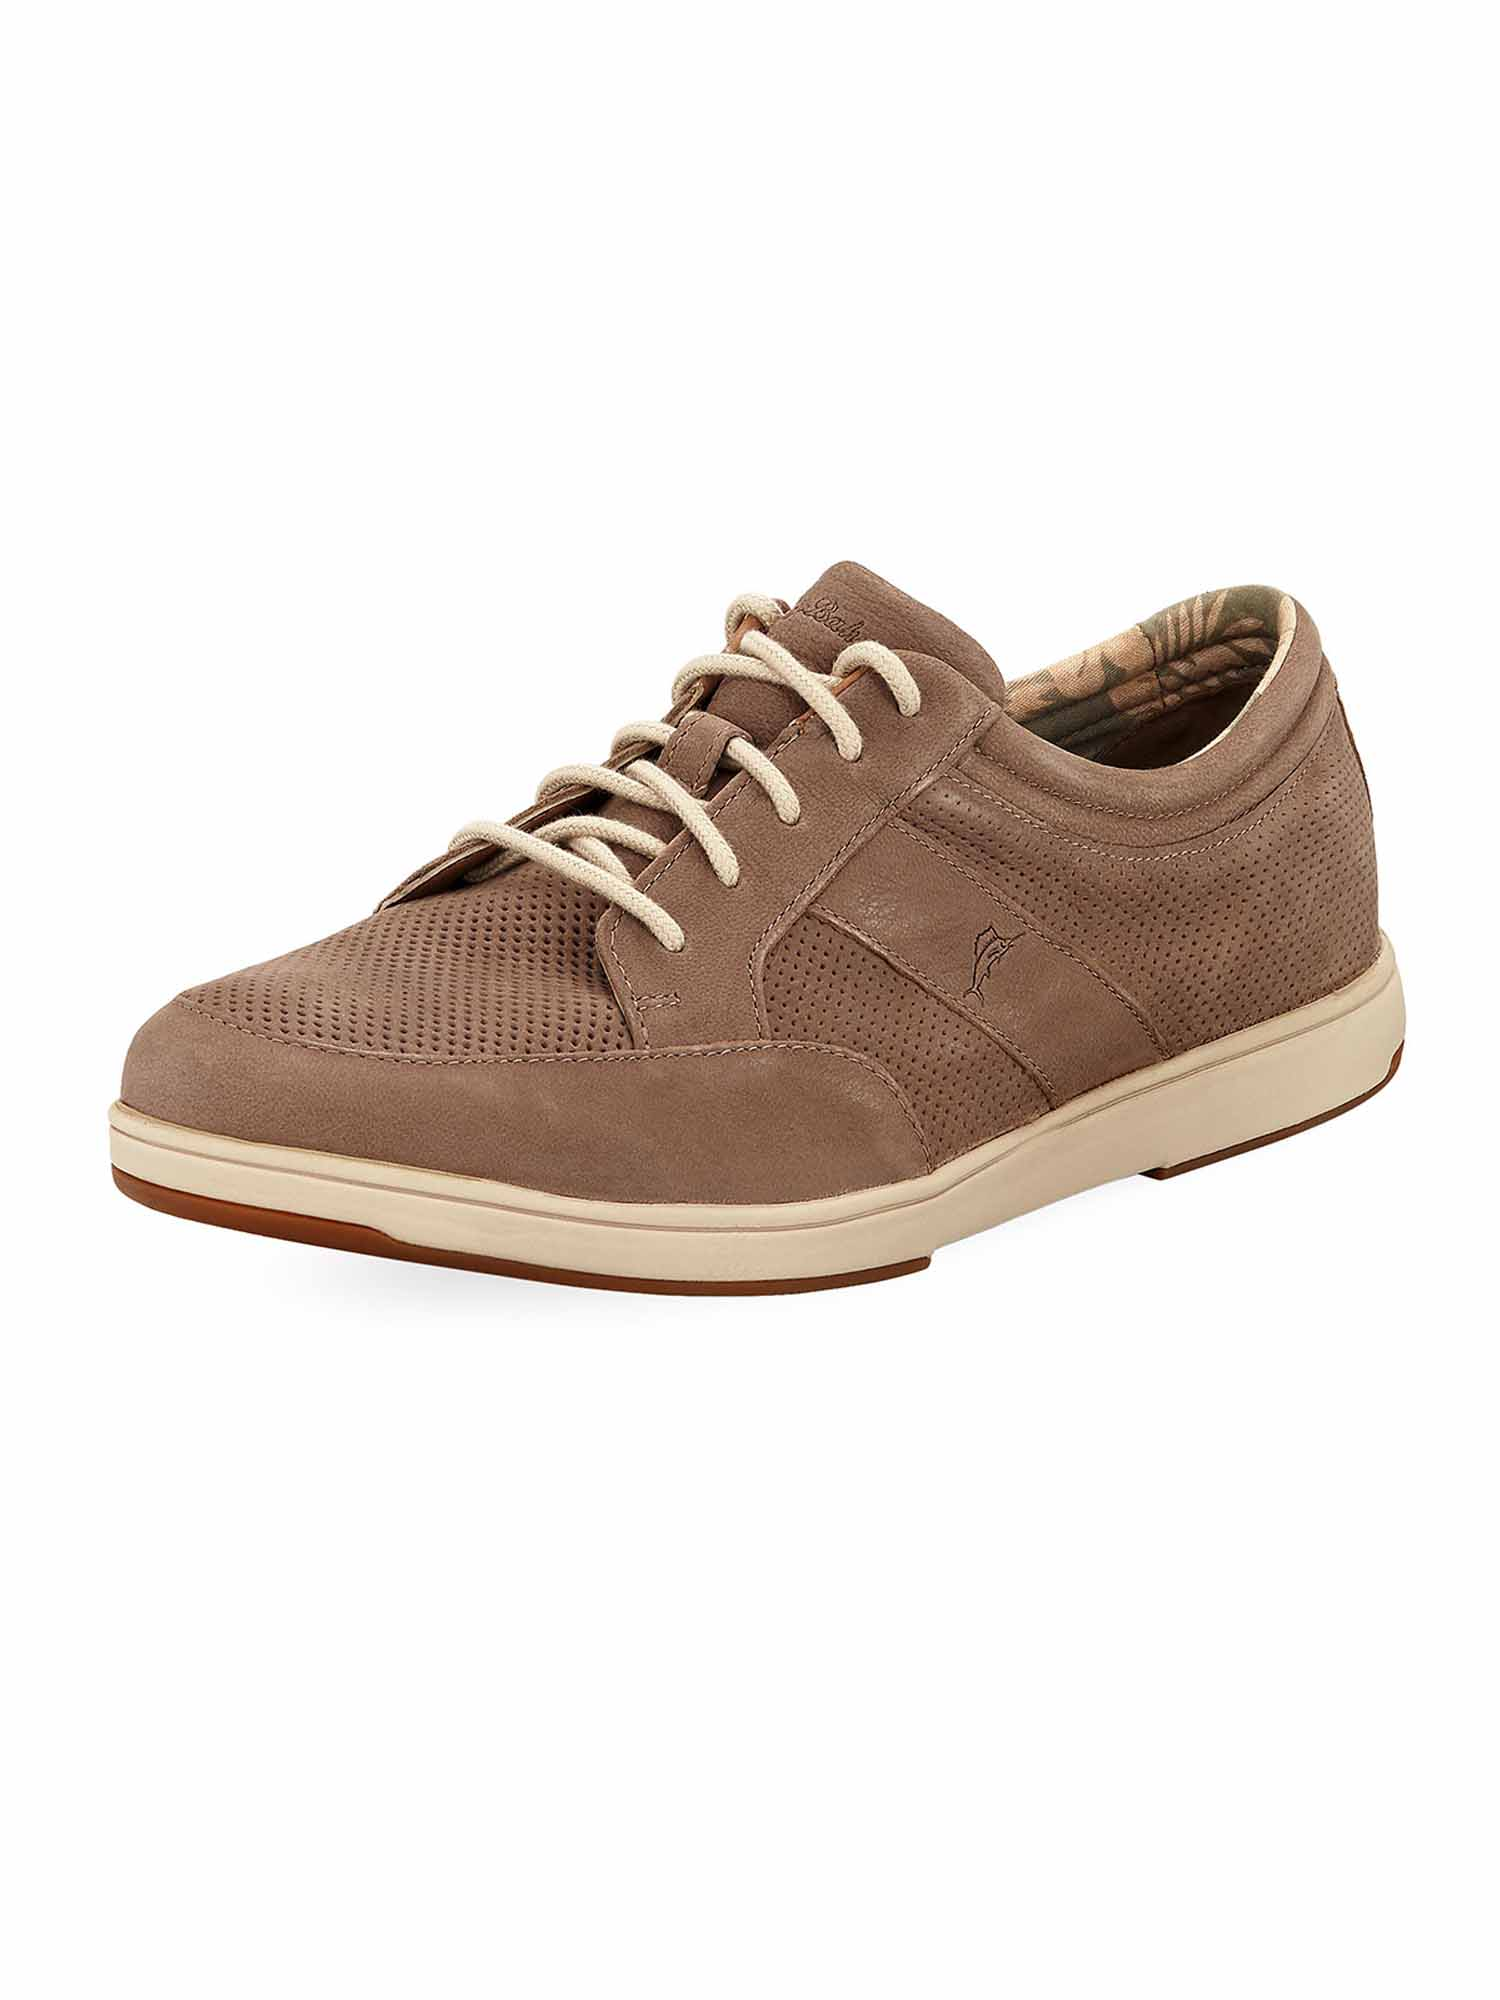 Tommy Bahama Mens Island Authentic Relaxology Suede Shoes (Taupe, 13) by